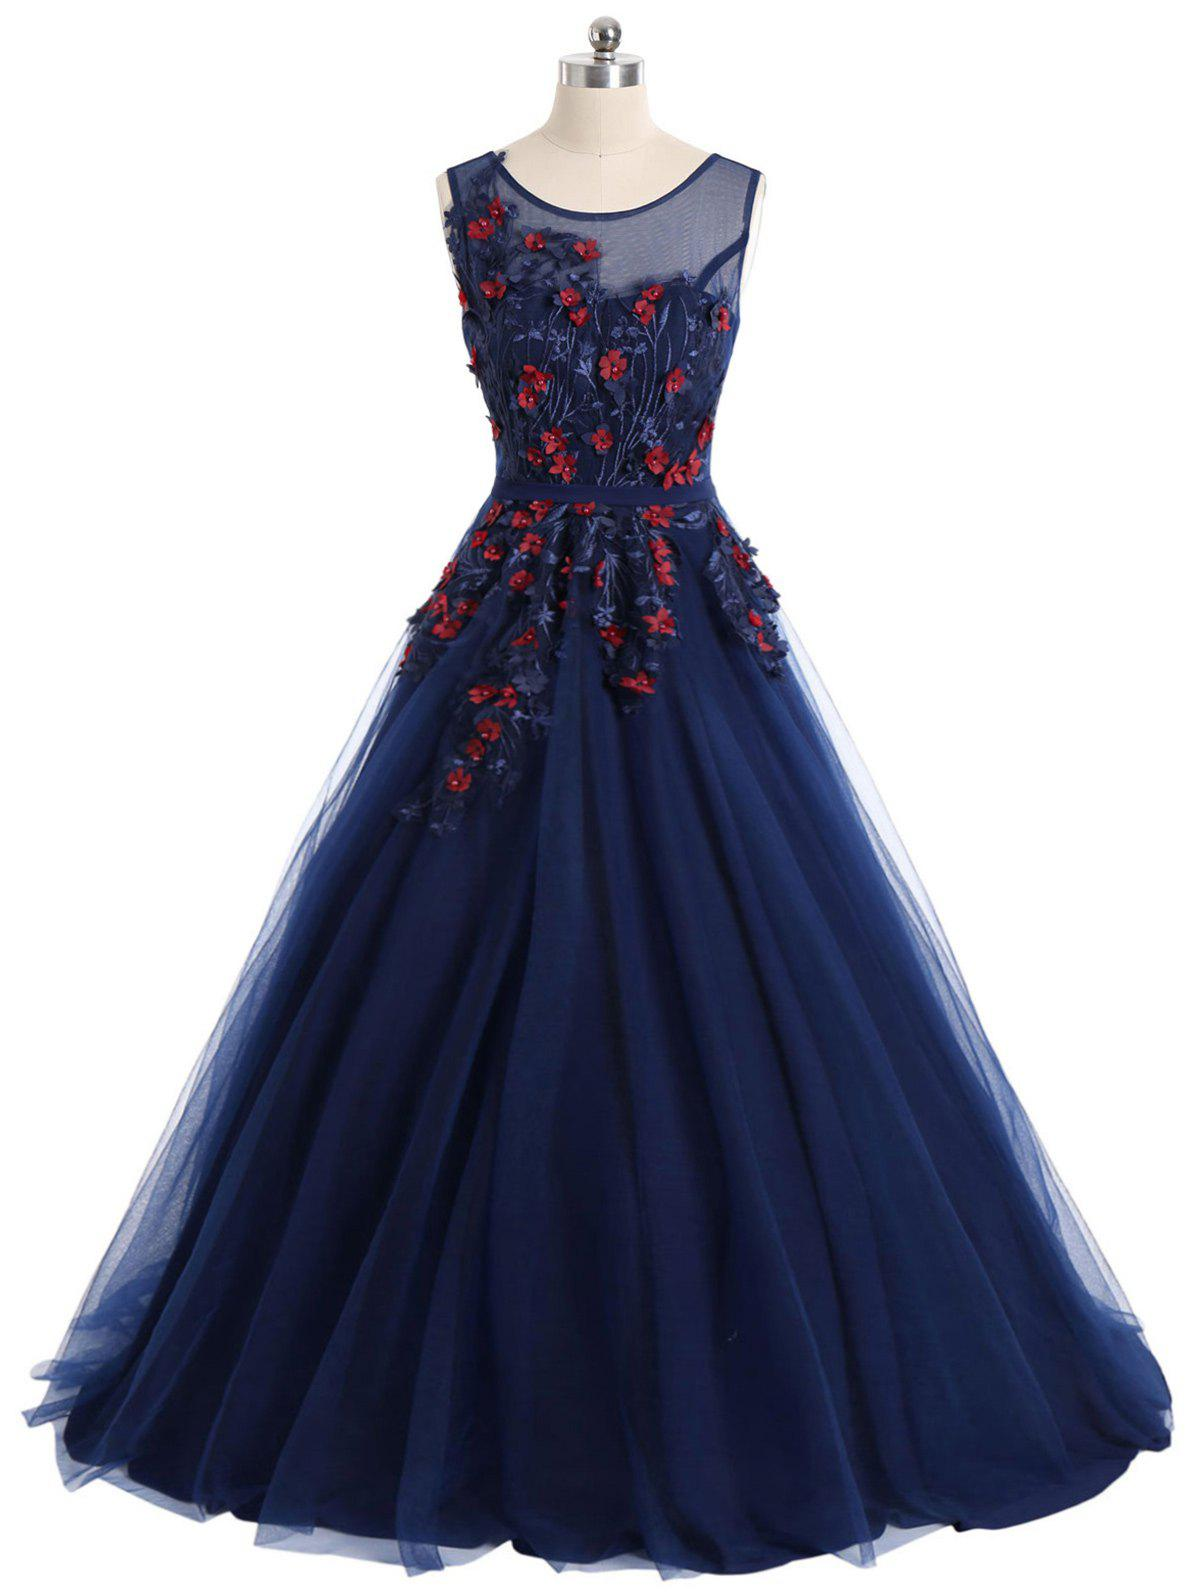 Chic Floral Applique Mesh Maxi Prom Evening Dress